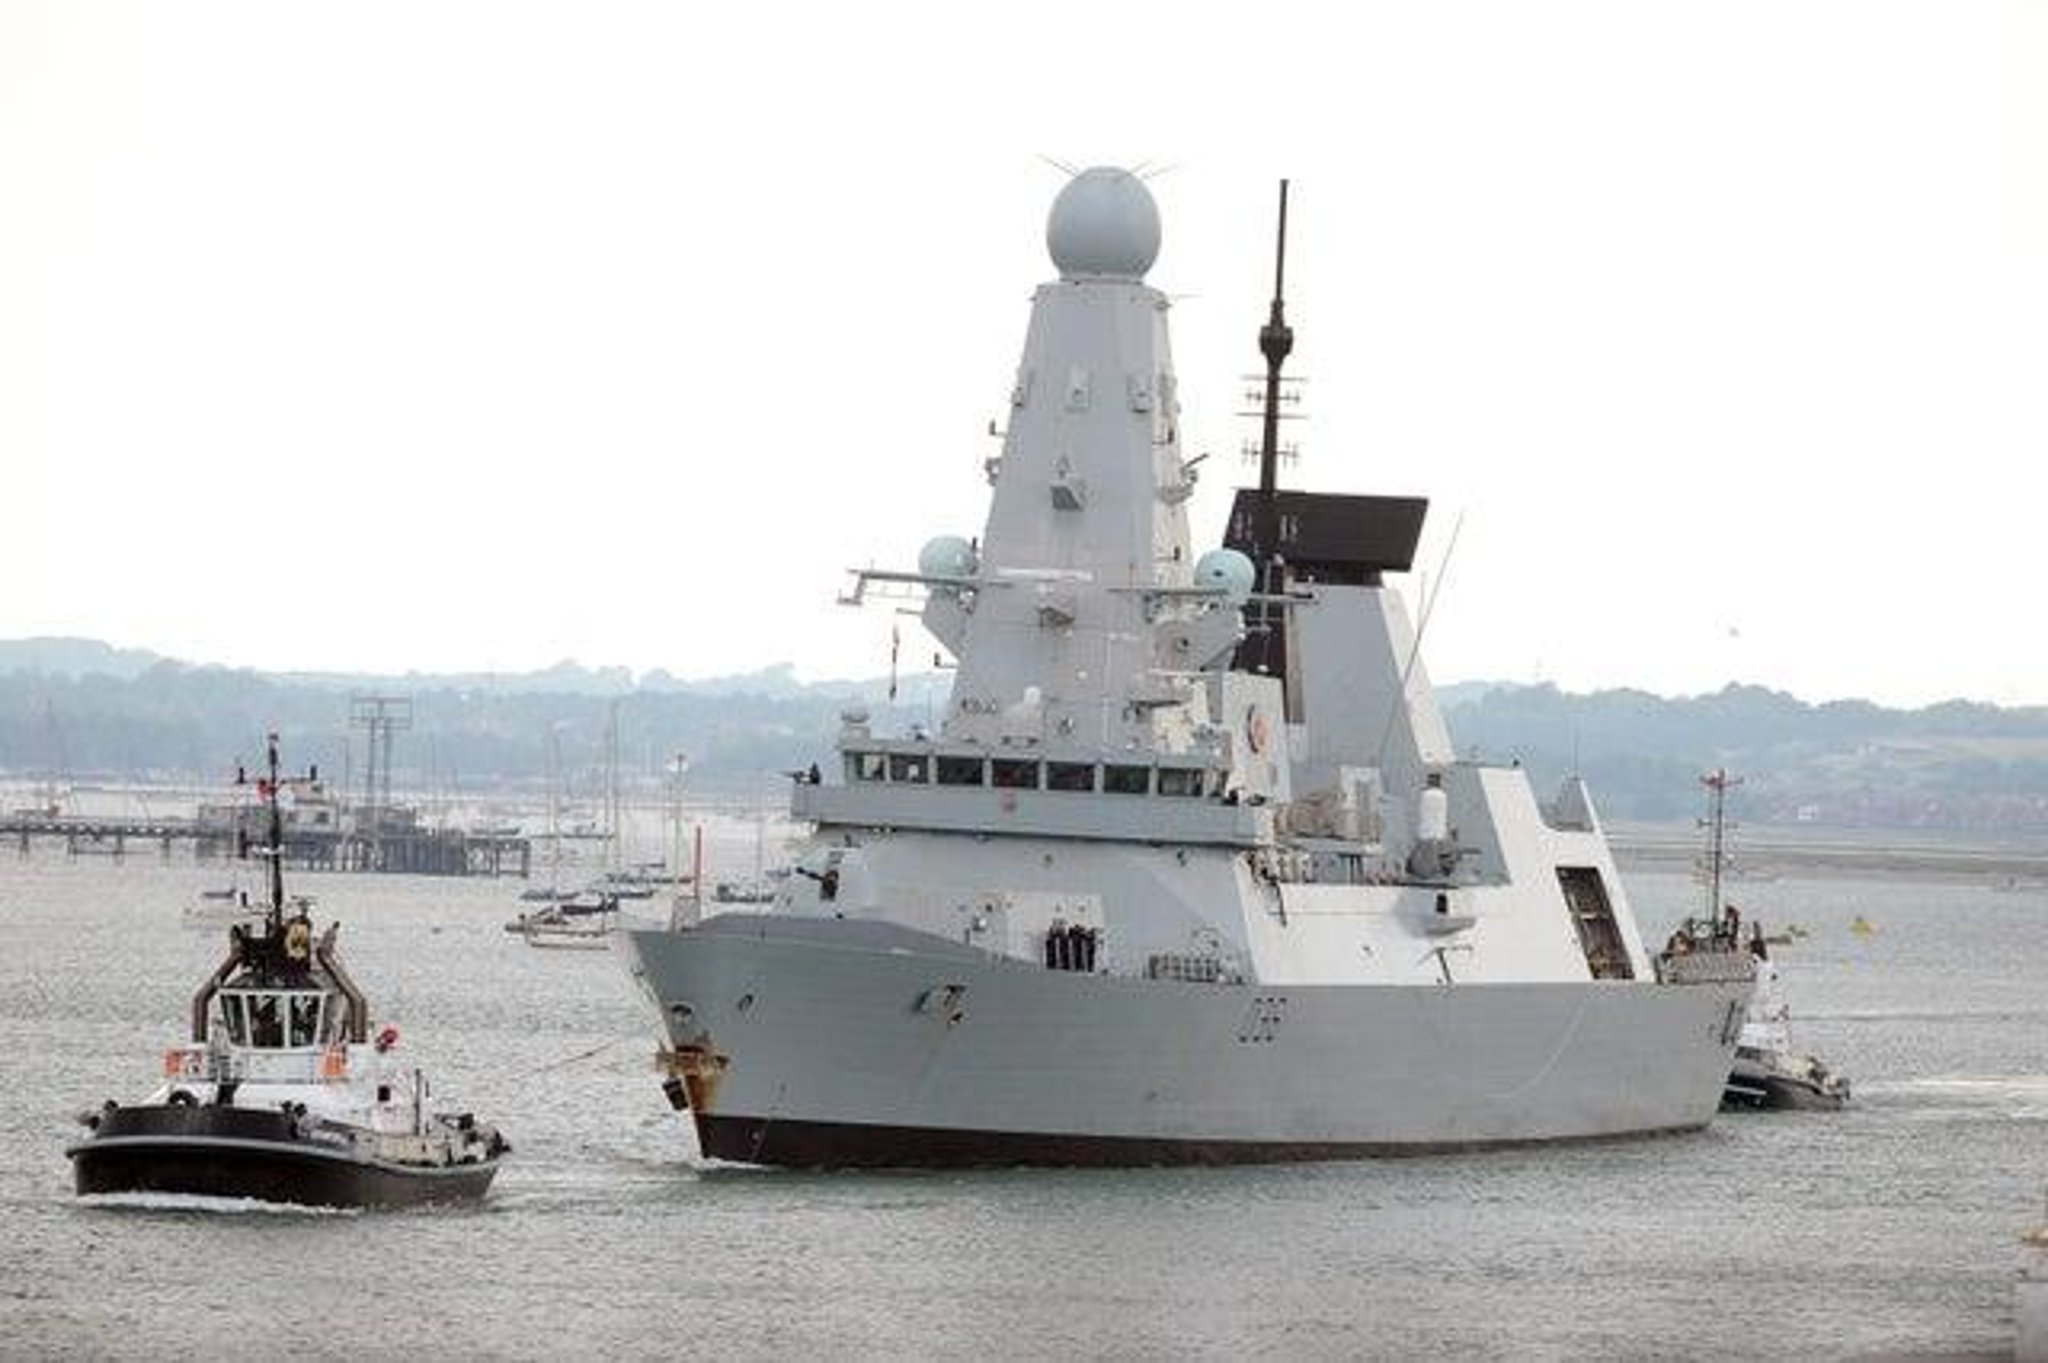 Navy warship HMS Defender leaves Portsmouth for sea trials ahead of global deployment